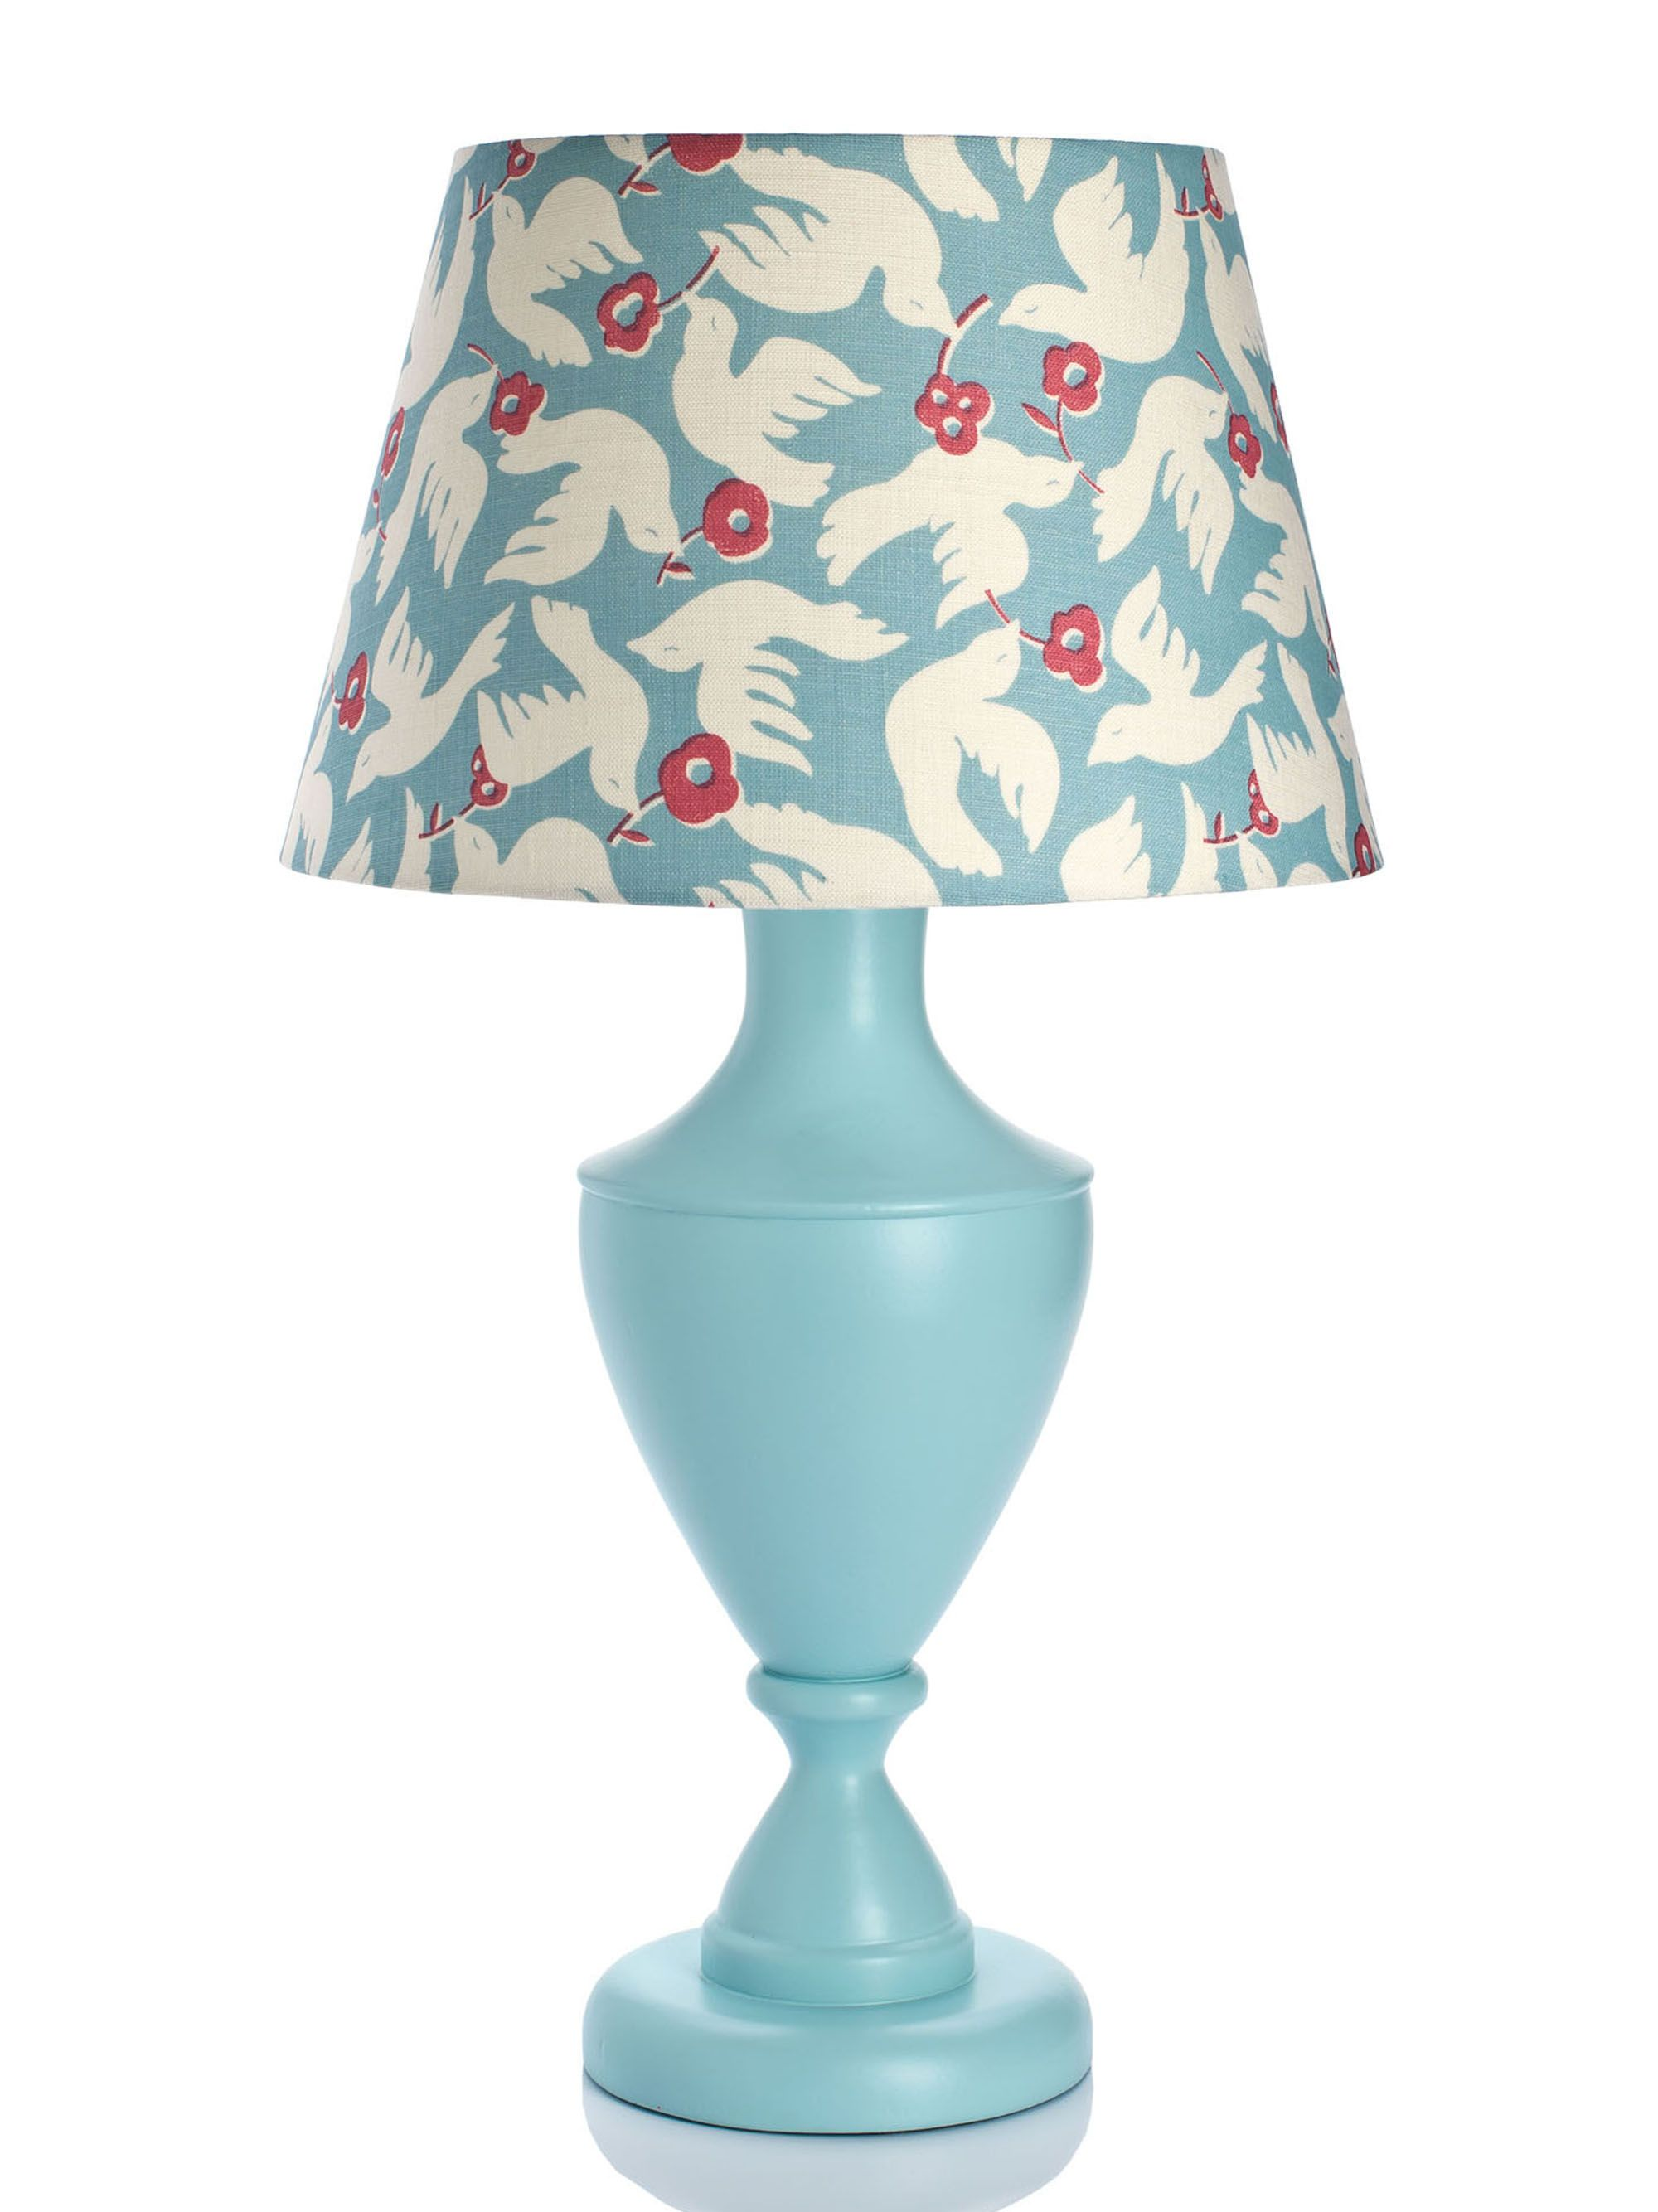 Large Urn Table Lamp In Light Blue With Doves Lampshade